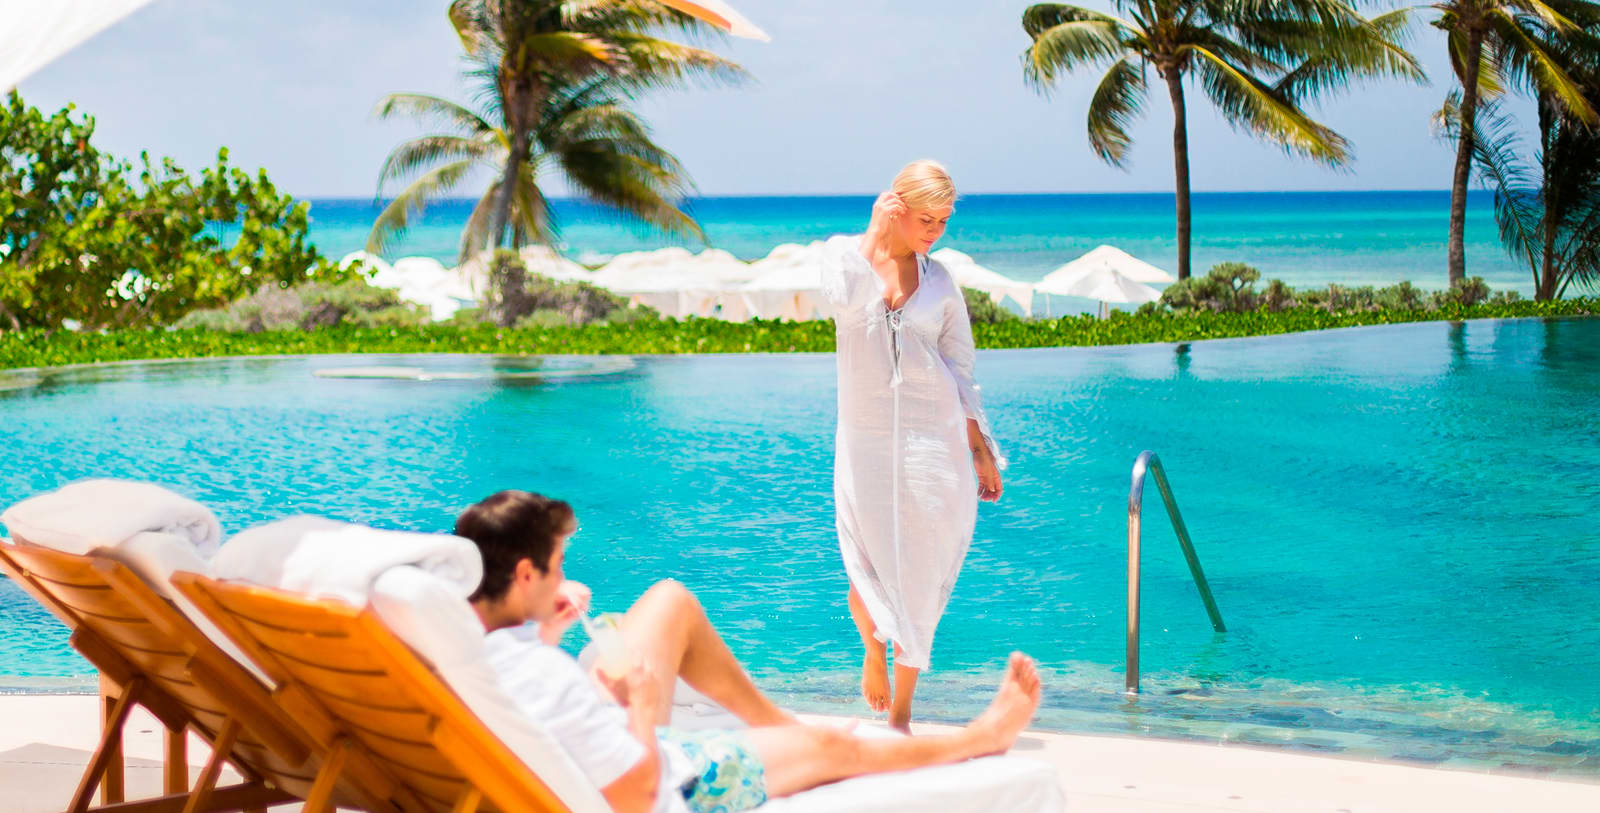 All-Inclusive Activities at Weddings by Velas Resorts, Mexico